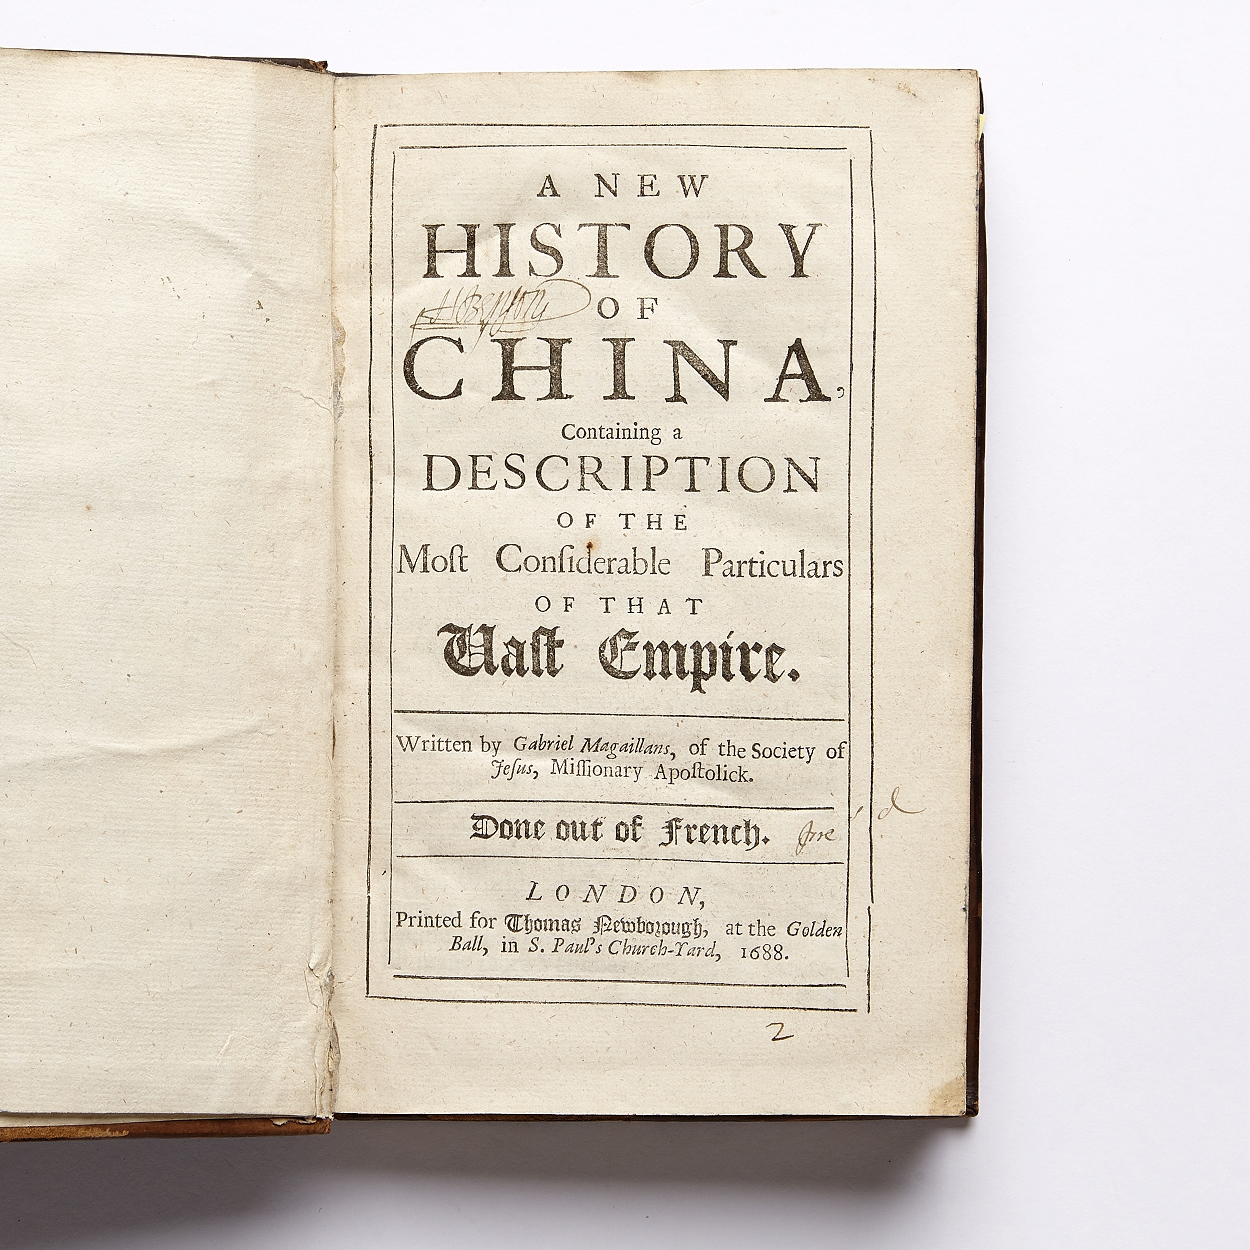 Magaillans' A new History of China 1688